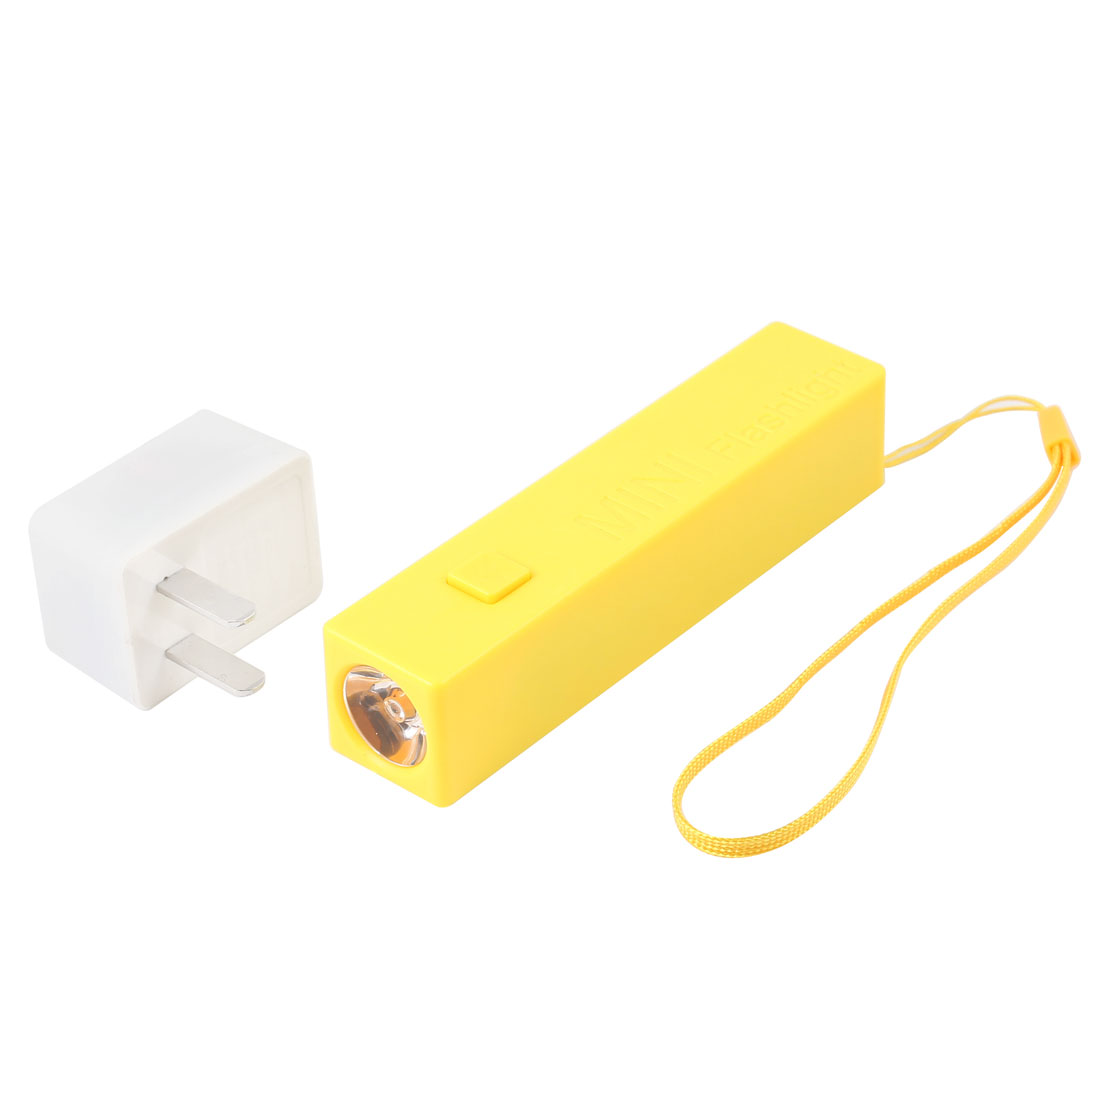 US Plug AC 100-240V Hand Pressing LED Flashlight Torch Yellow + Charger Adapter